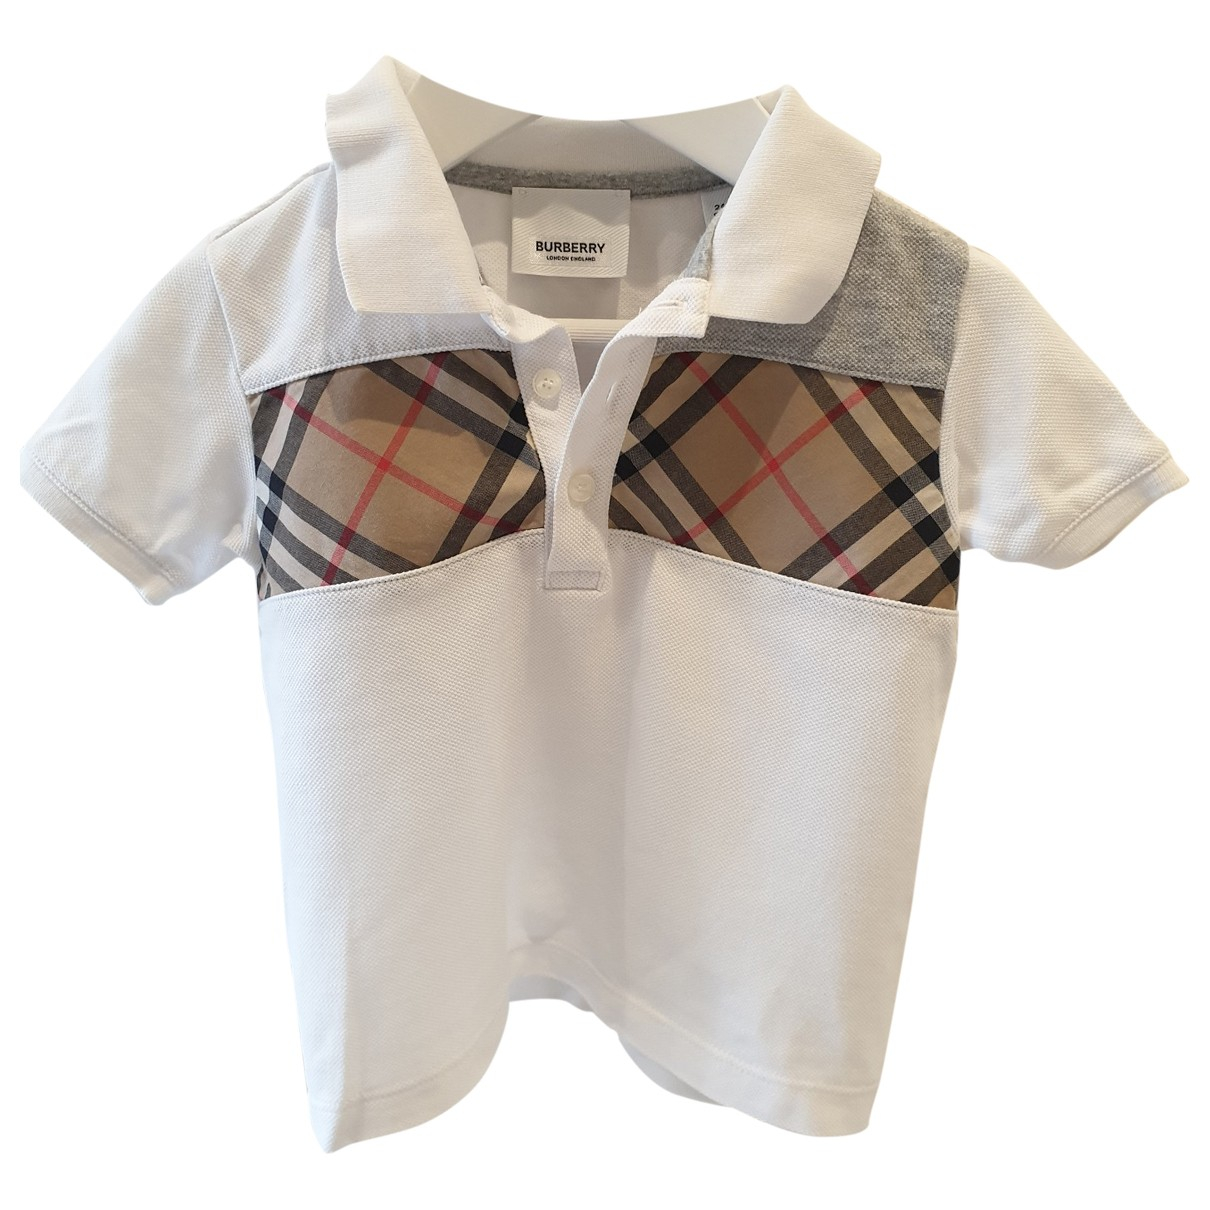 Burberry \N White Cotton  top for Kids 2 years - until 34 inches UK